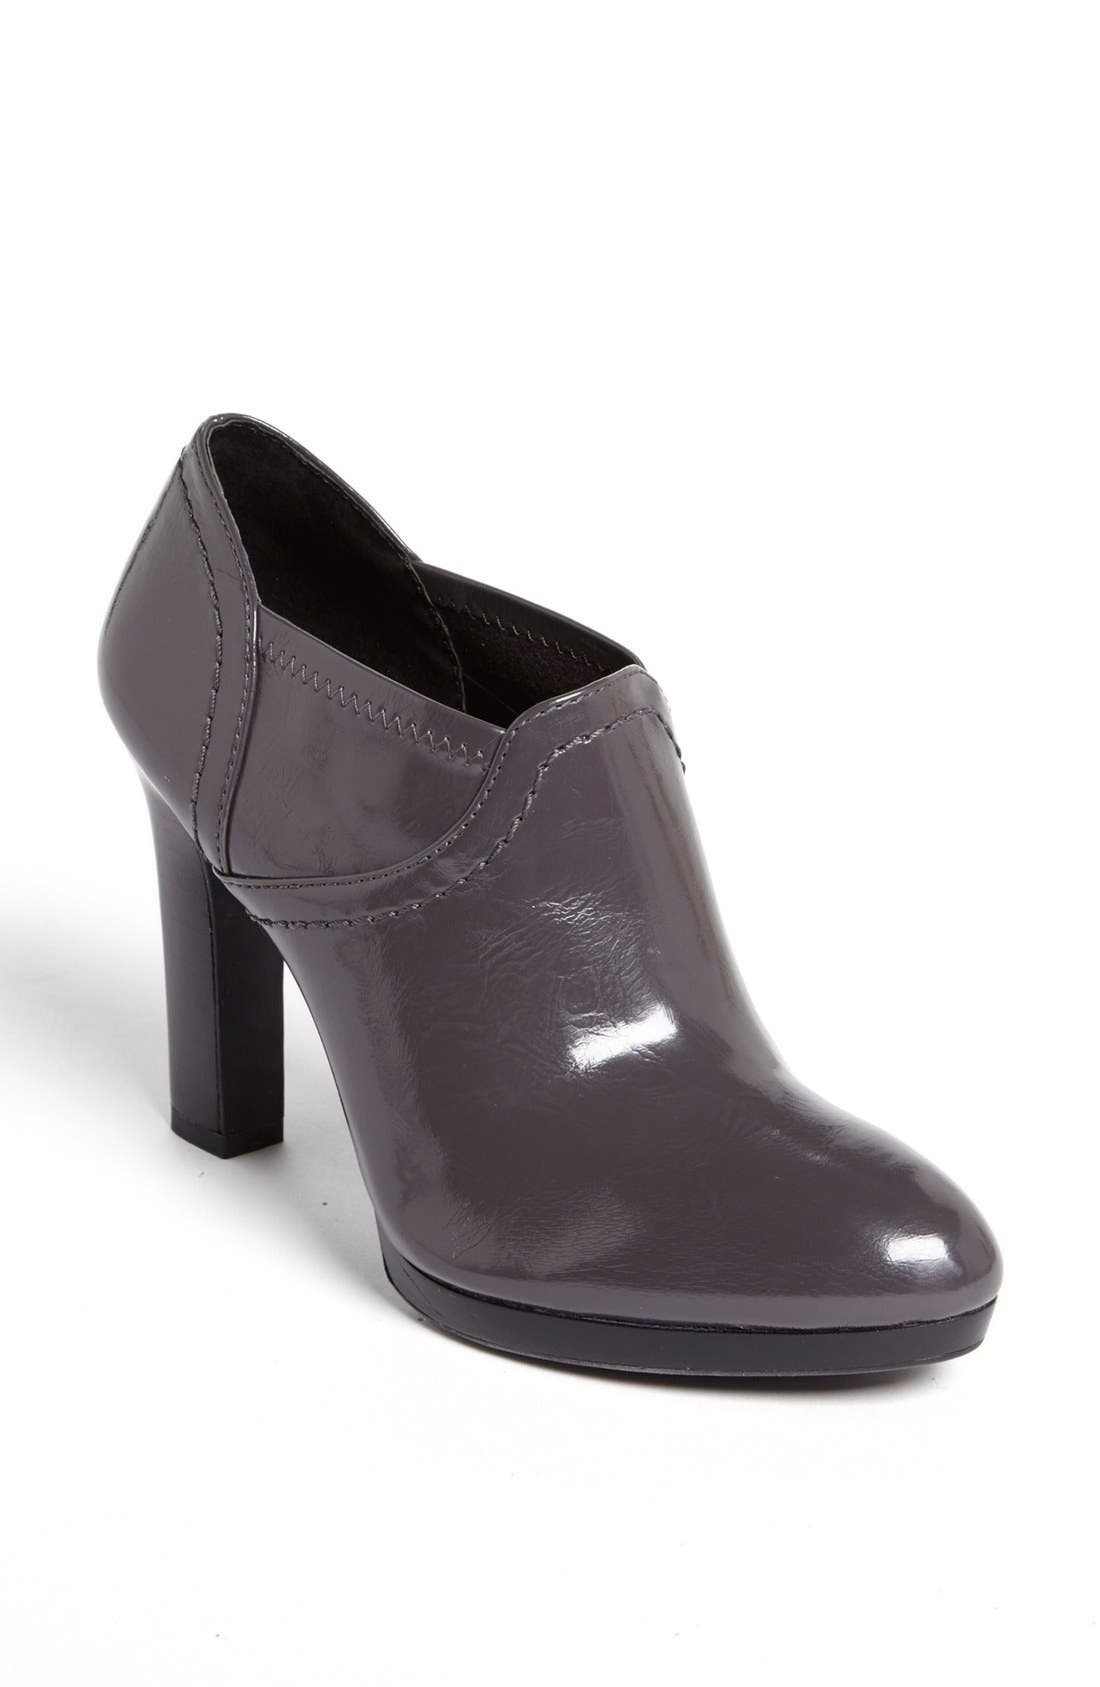 Alternate Image 1 Selected - Franco Sarto 'Ferry' Boot